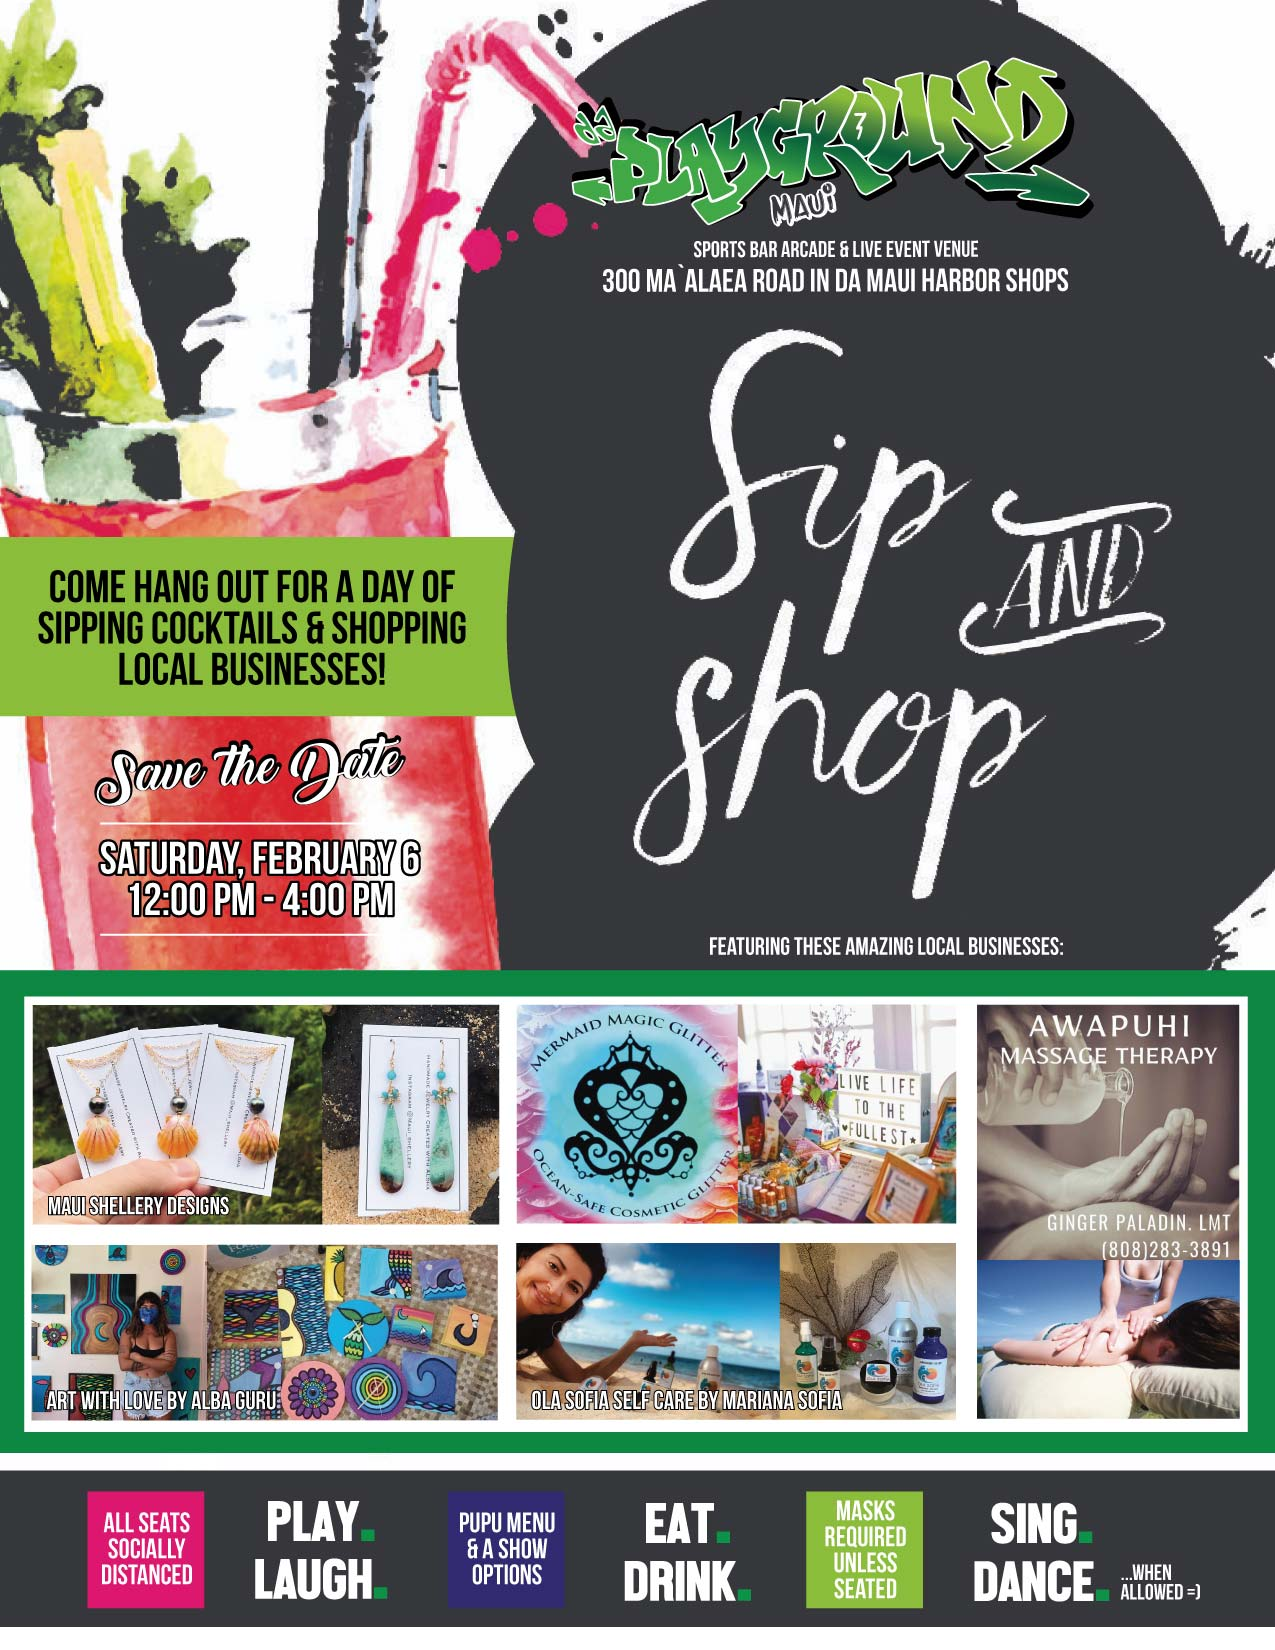 Sip n Shop at da playground maui